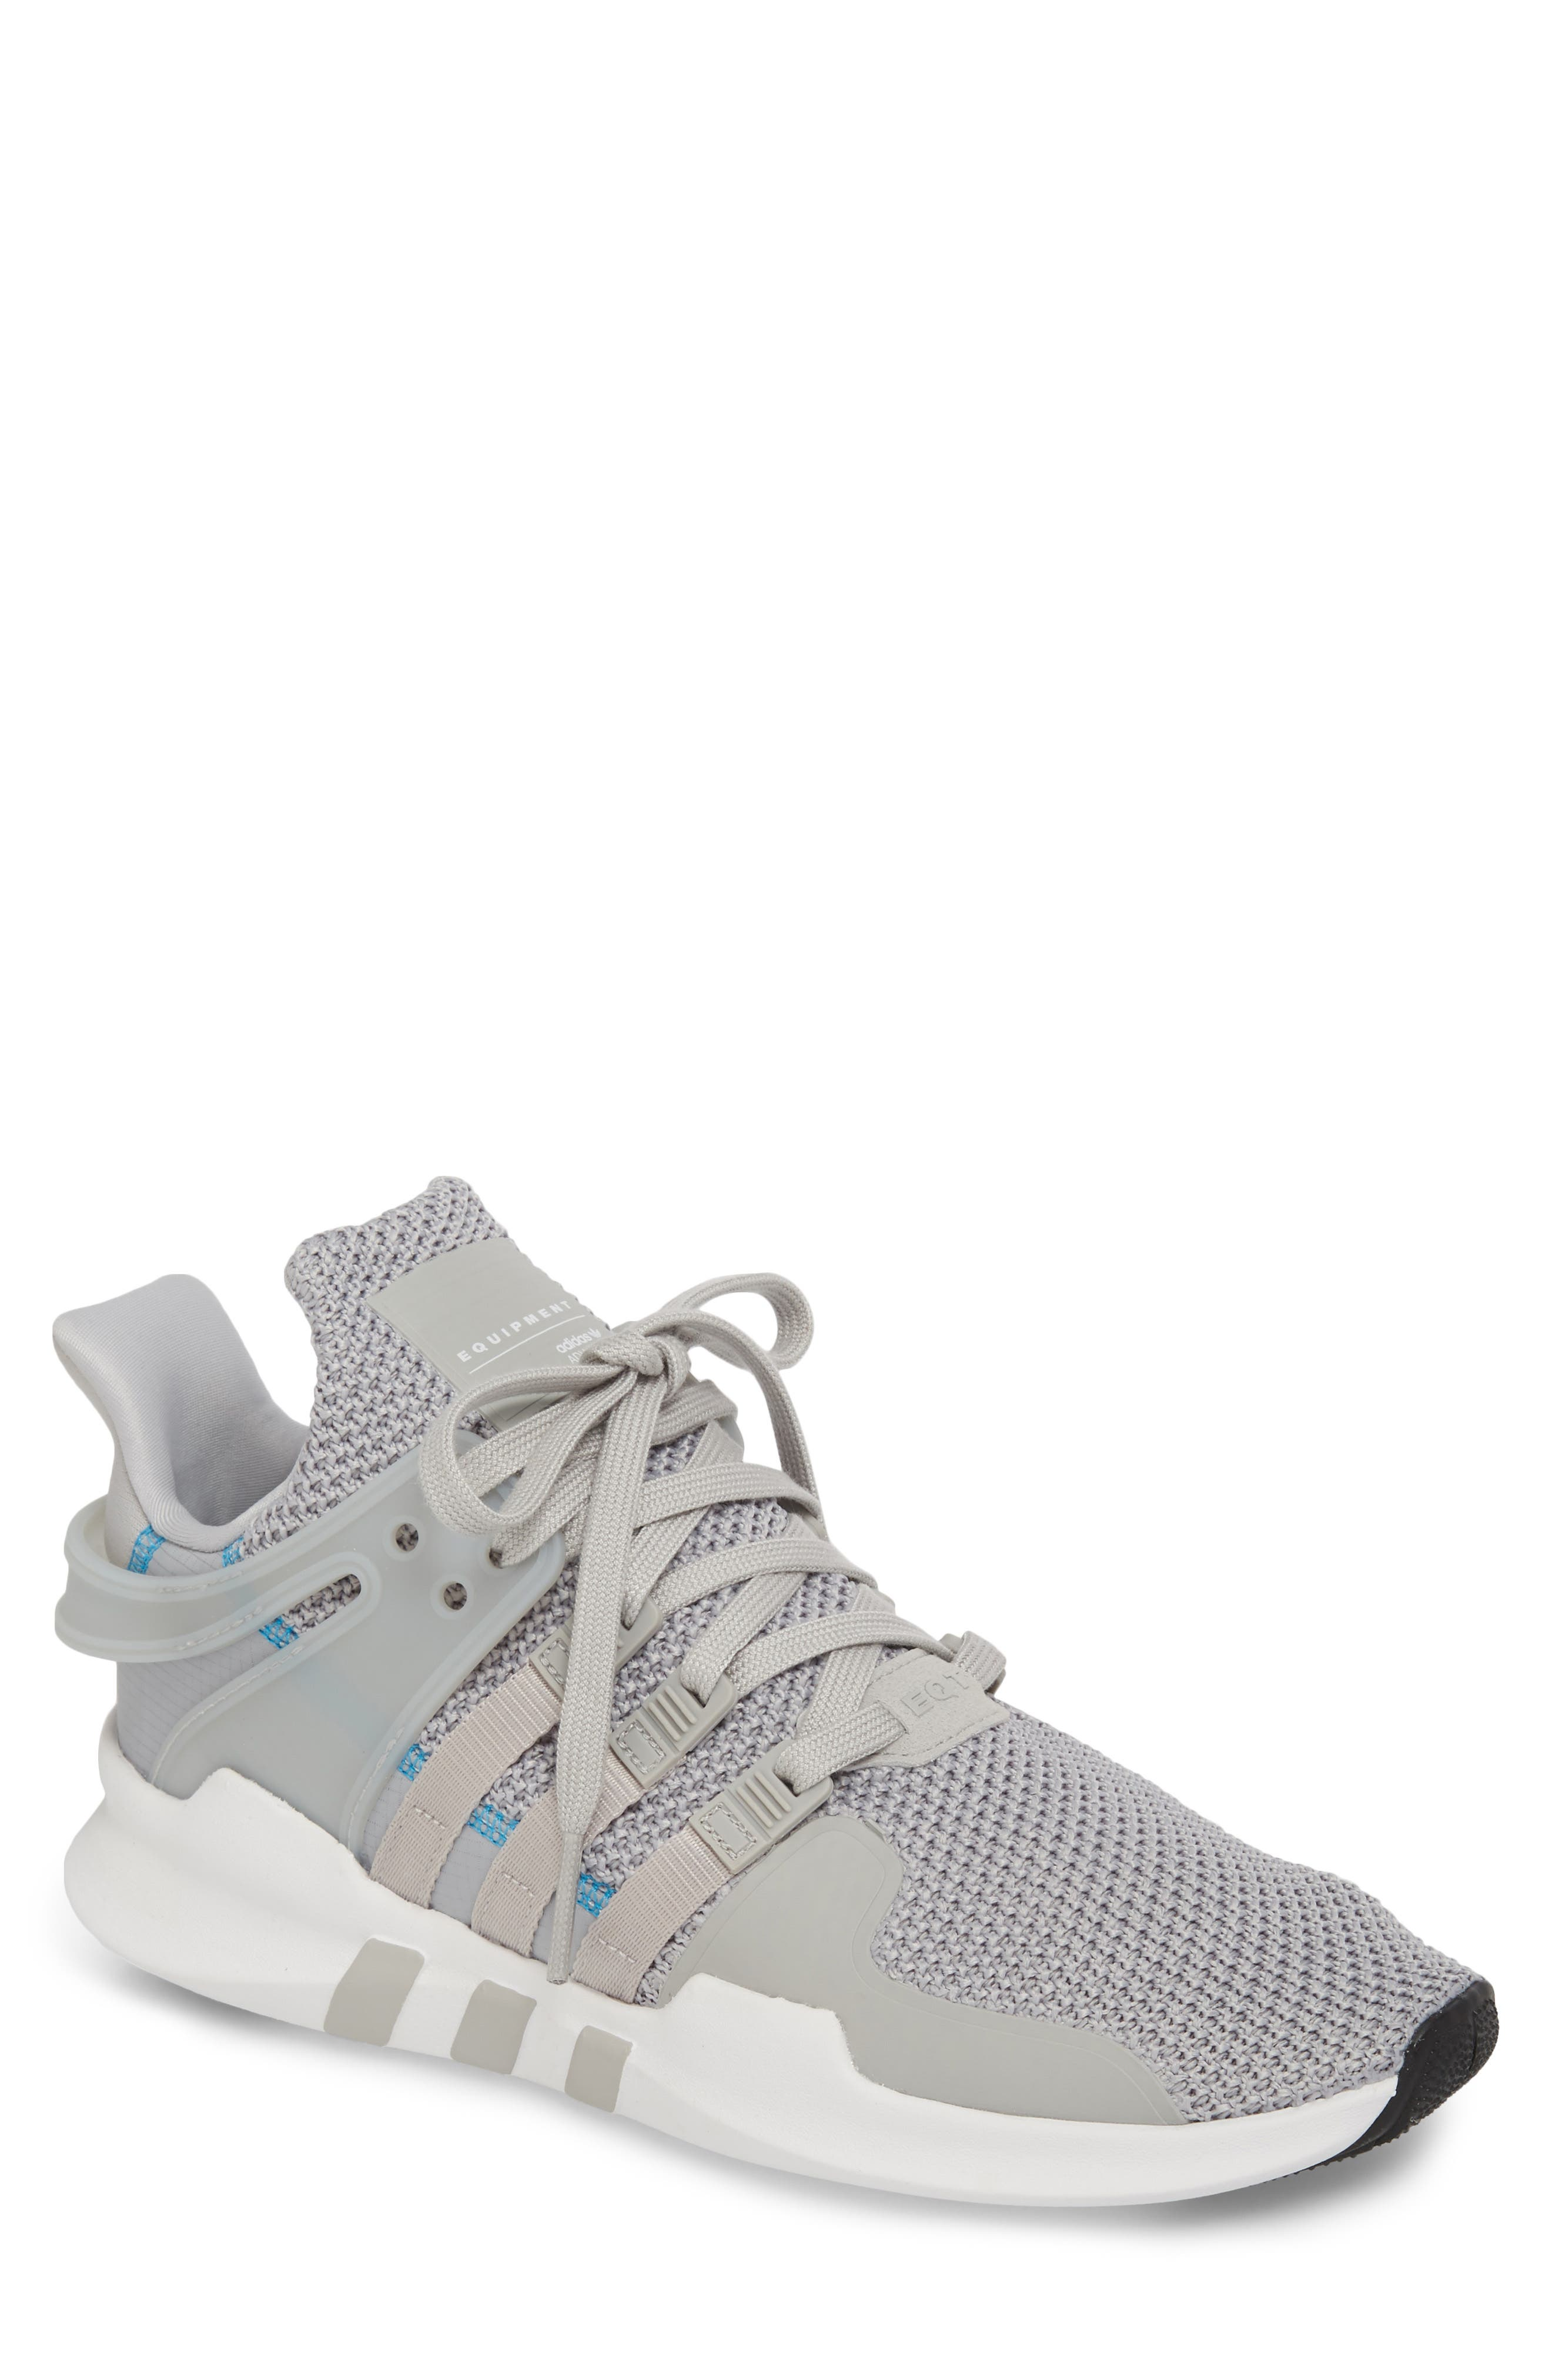 EQT Support Adv Sneaker,                             Main thumbnail 1, color,                             Grey/ White